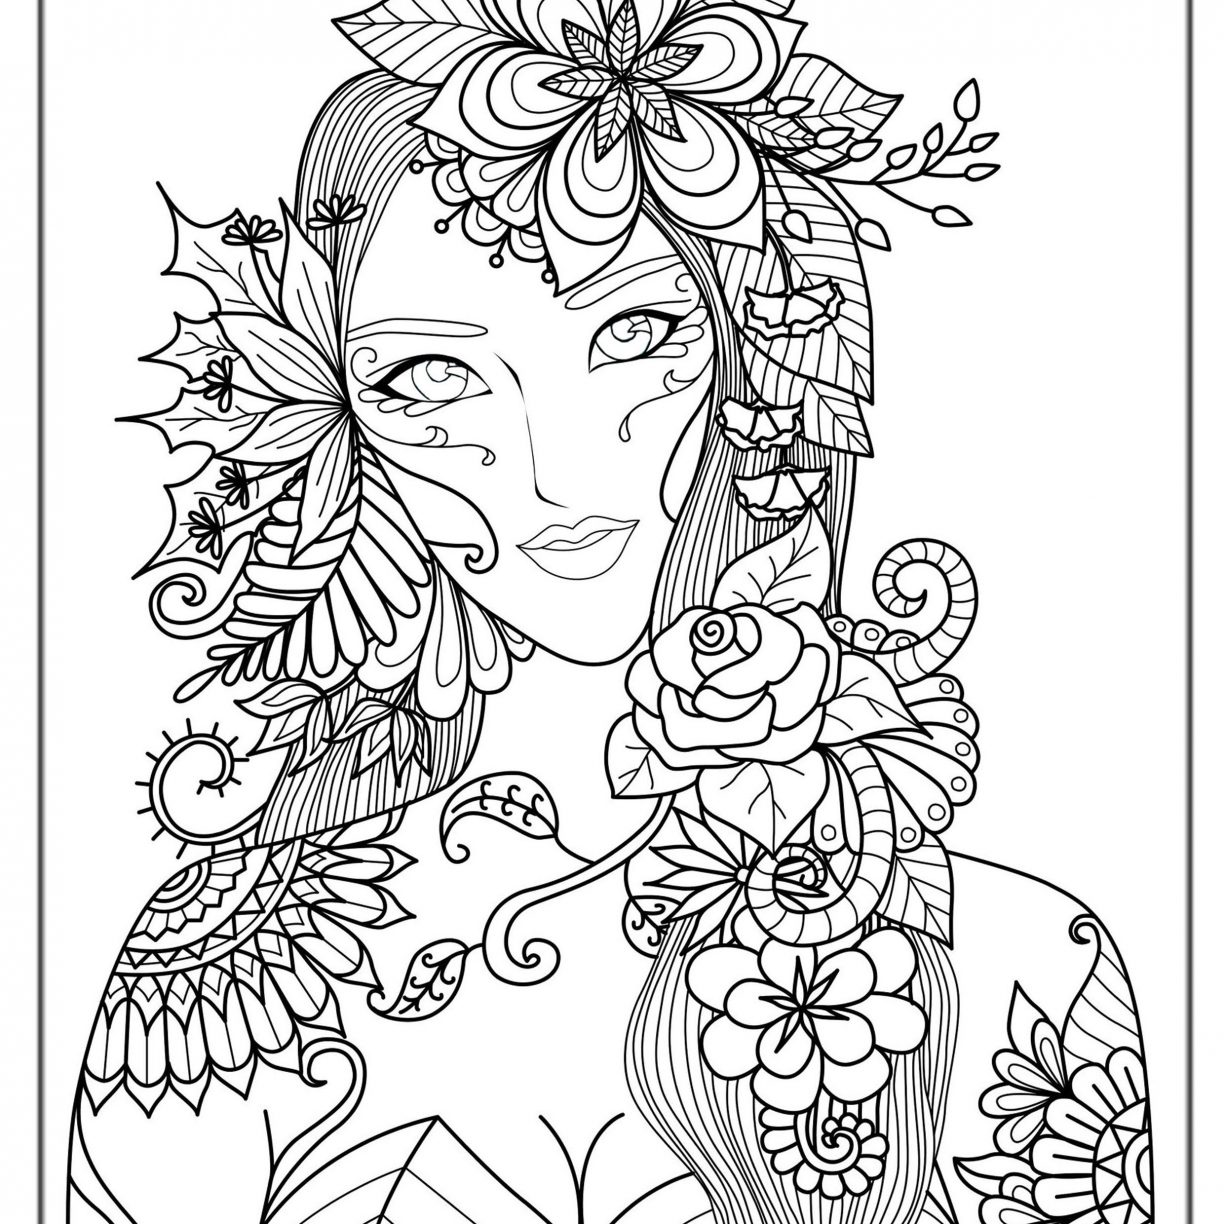 Intricate Mermaid Coloring Pages at GetDrawings.com   Free for ...